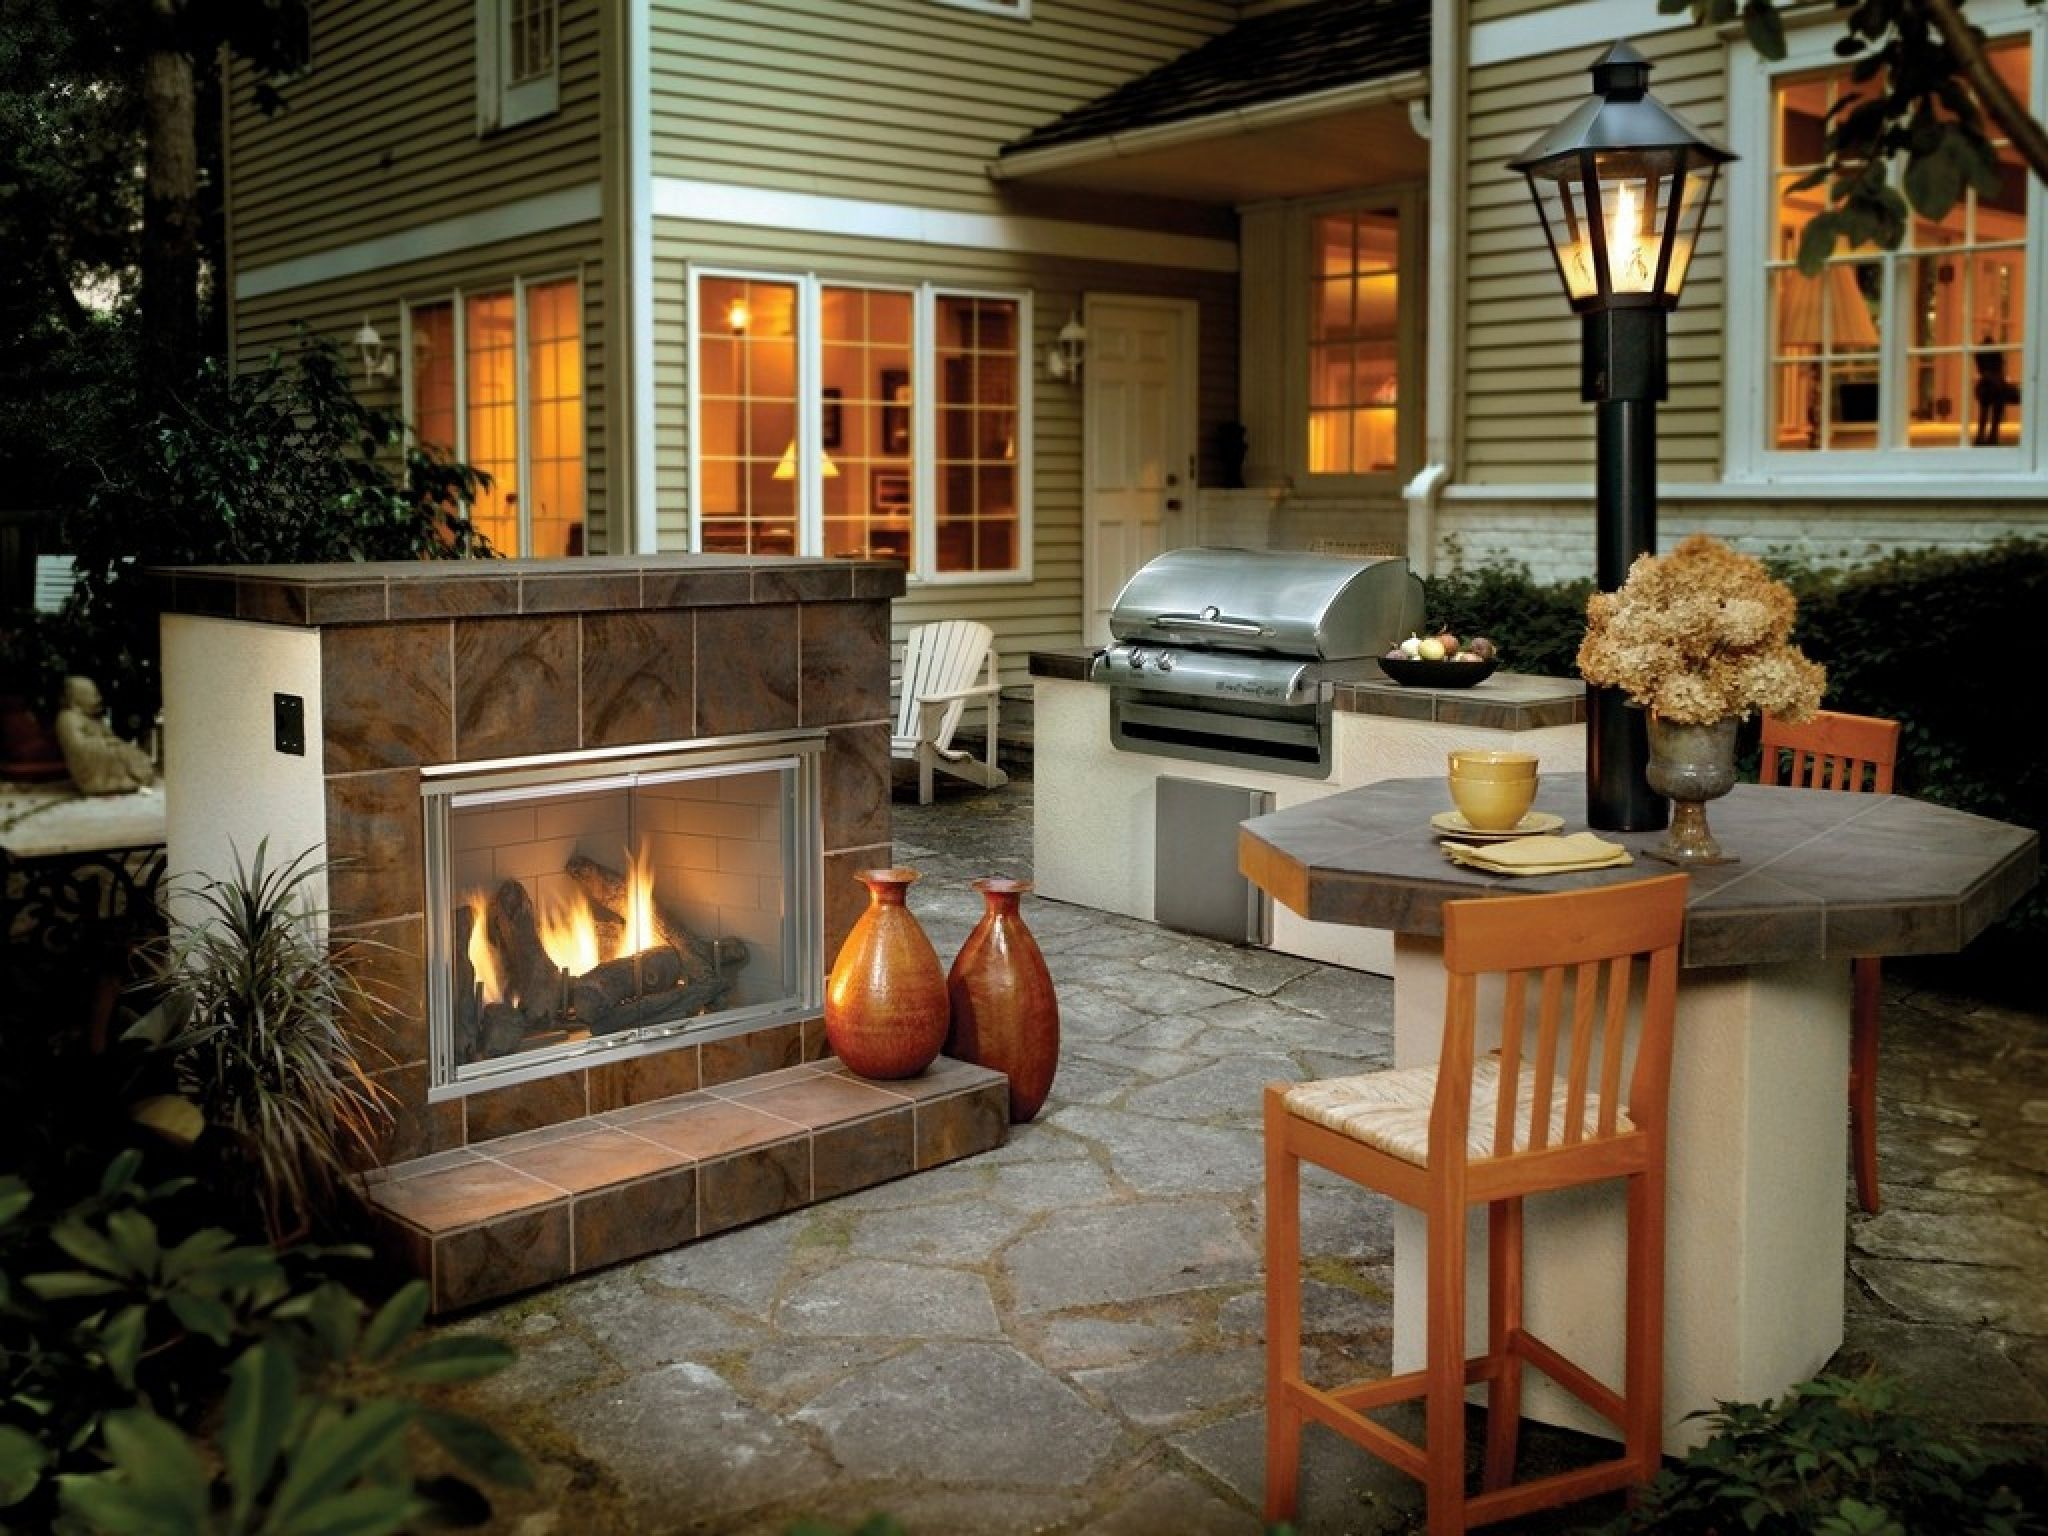 outdoor patio gas fireplace - lowes paint colors interior ... on Simple Outdoor Fireplace Ideas id=81963